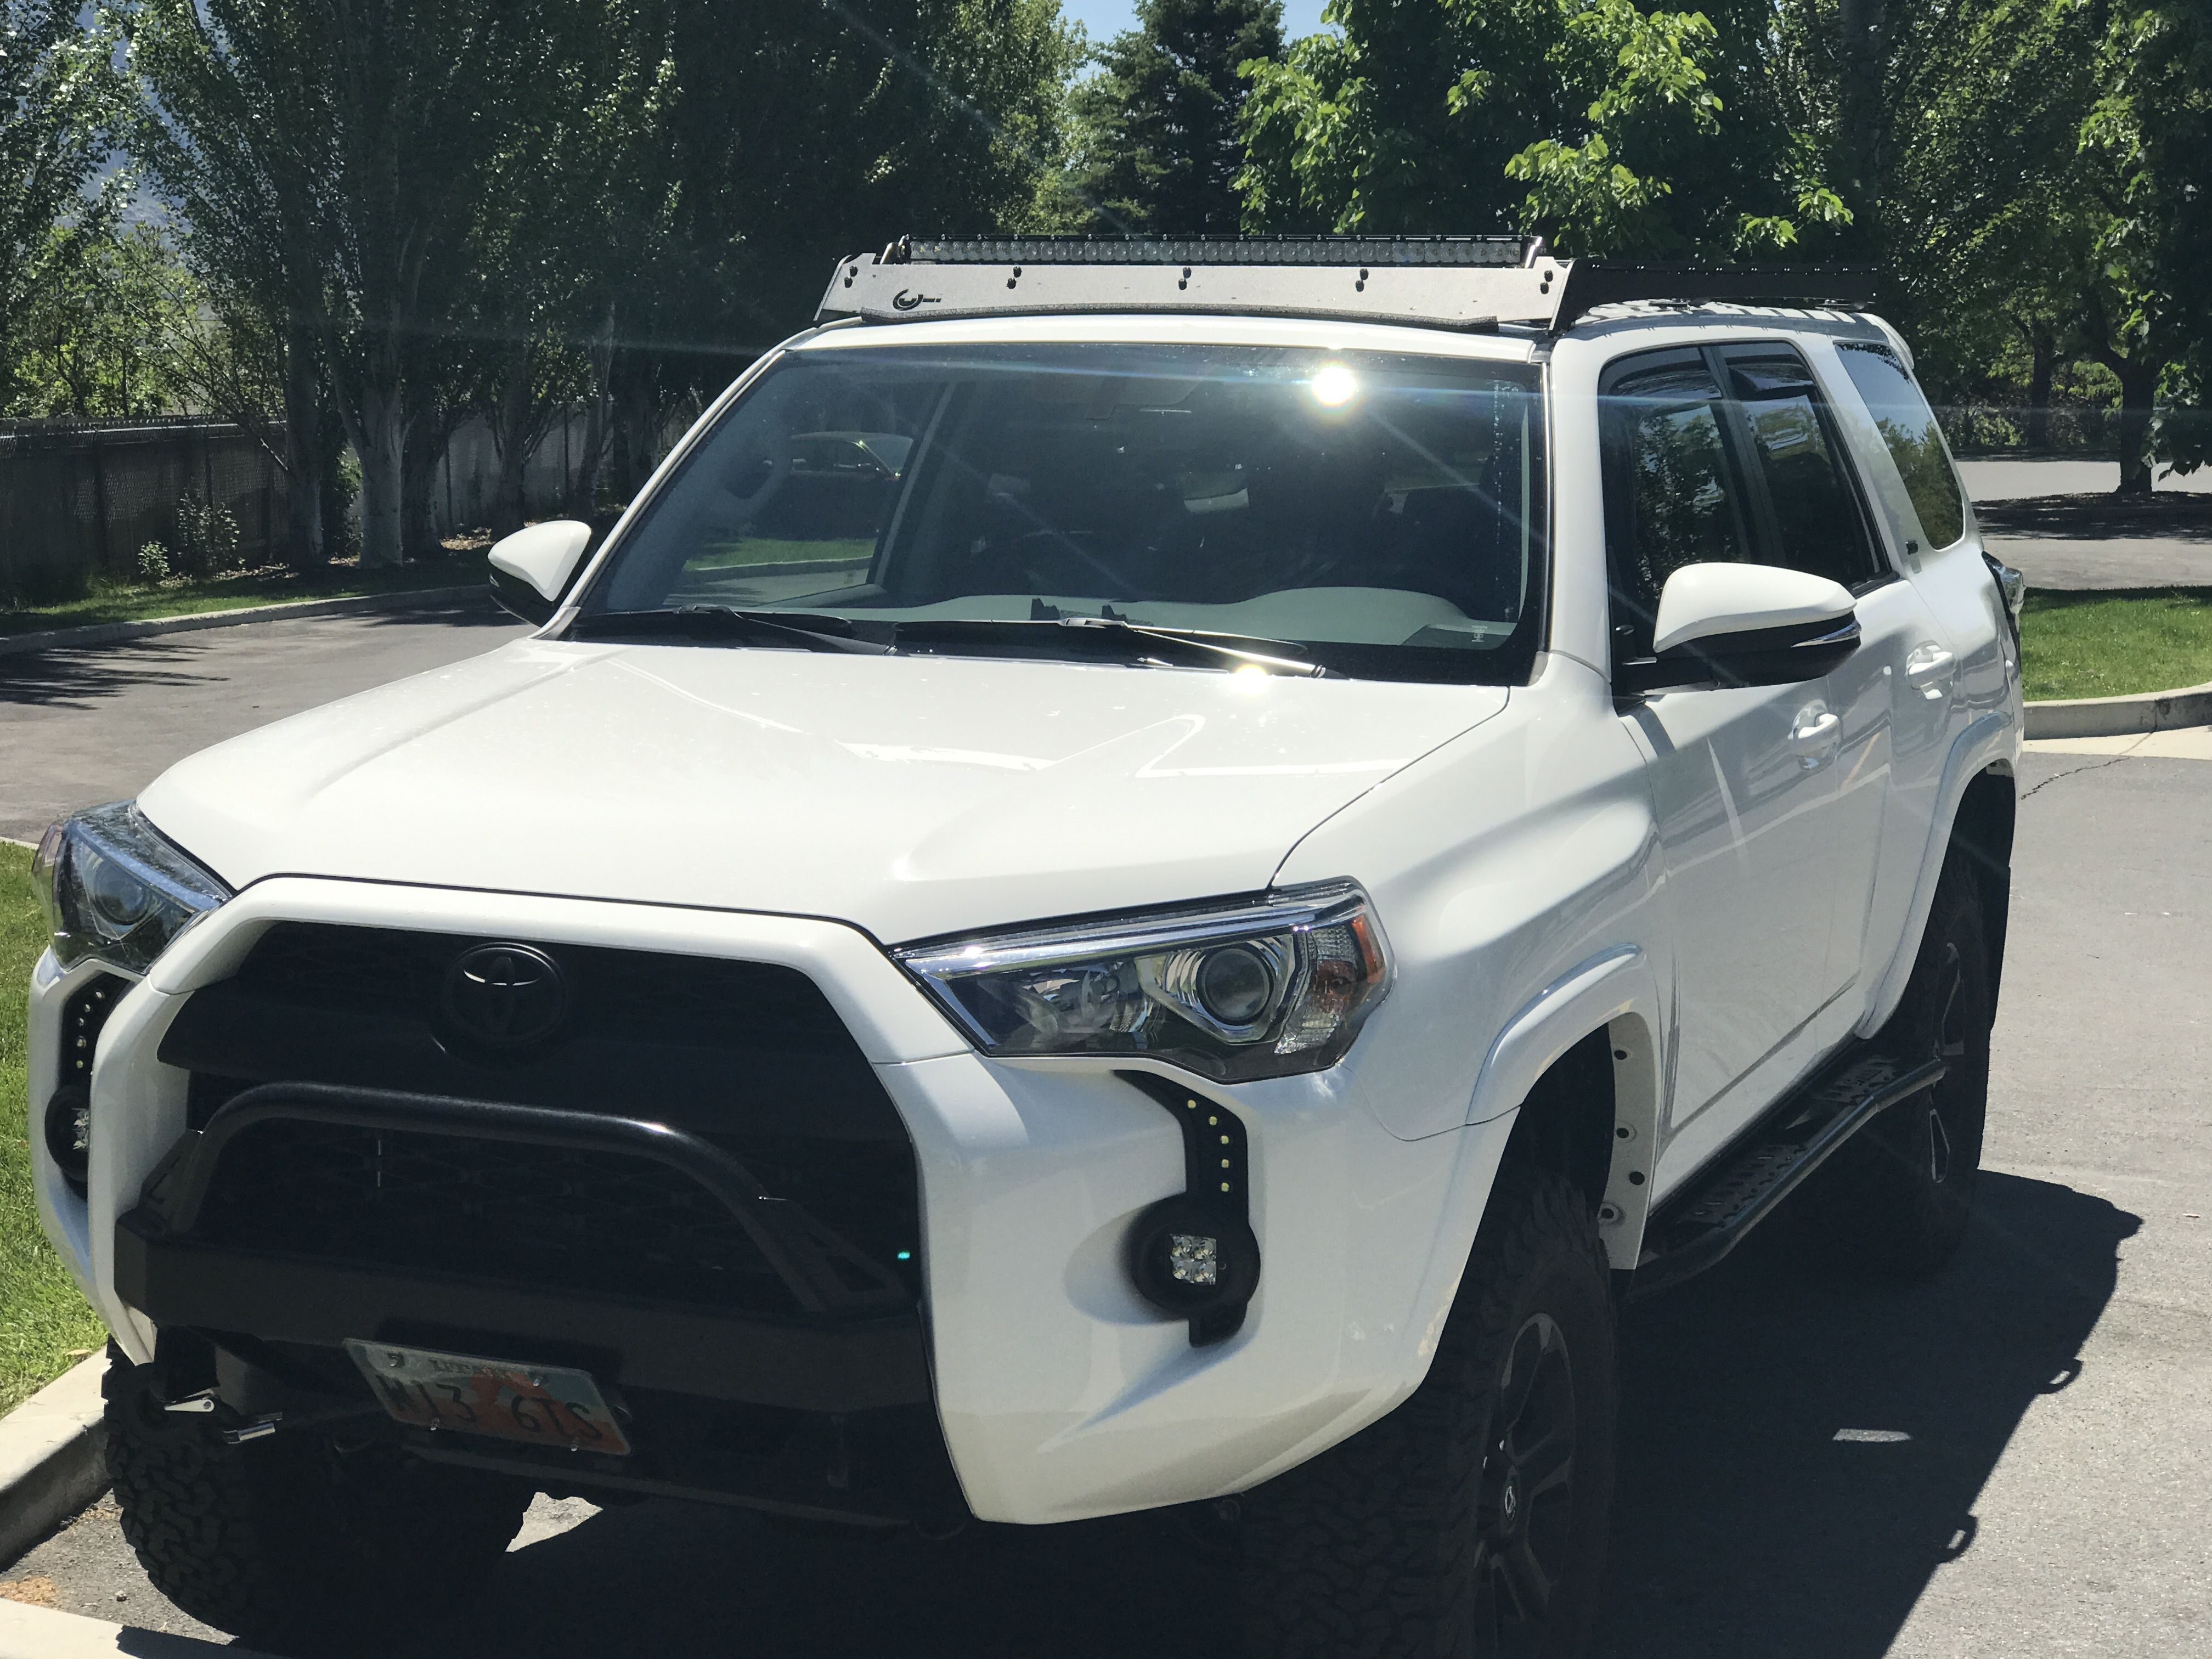 2018 toyota 4runner price release date review news 2018 toyota 4runner price release date review news toyota pinterest toyota 4runner suv reviews and toyota mozeypictures Image collections